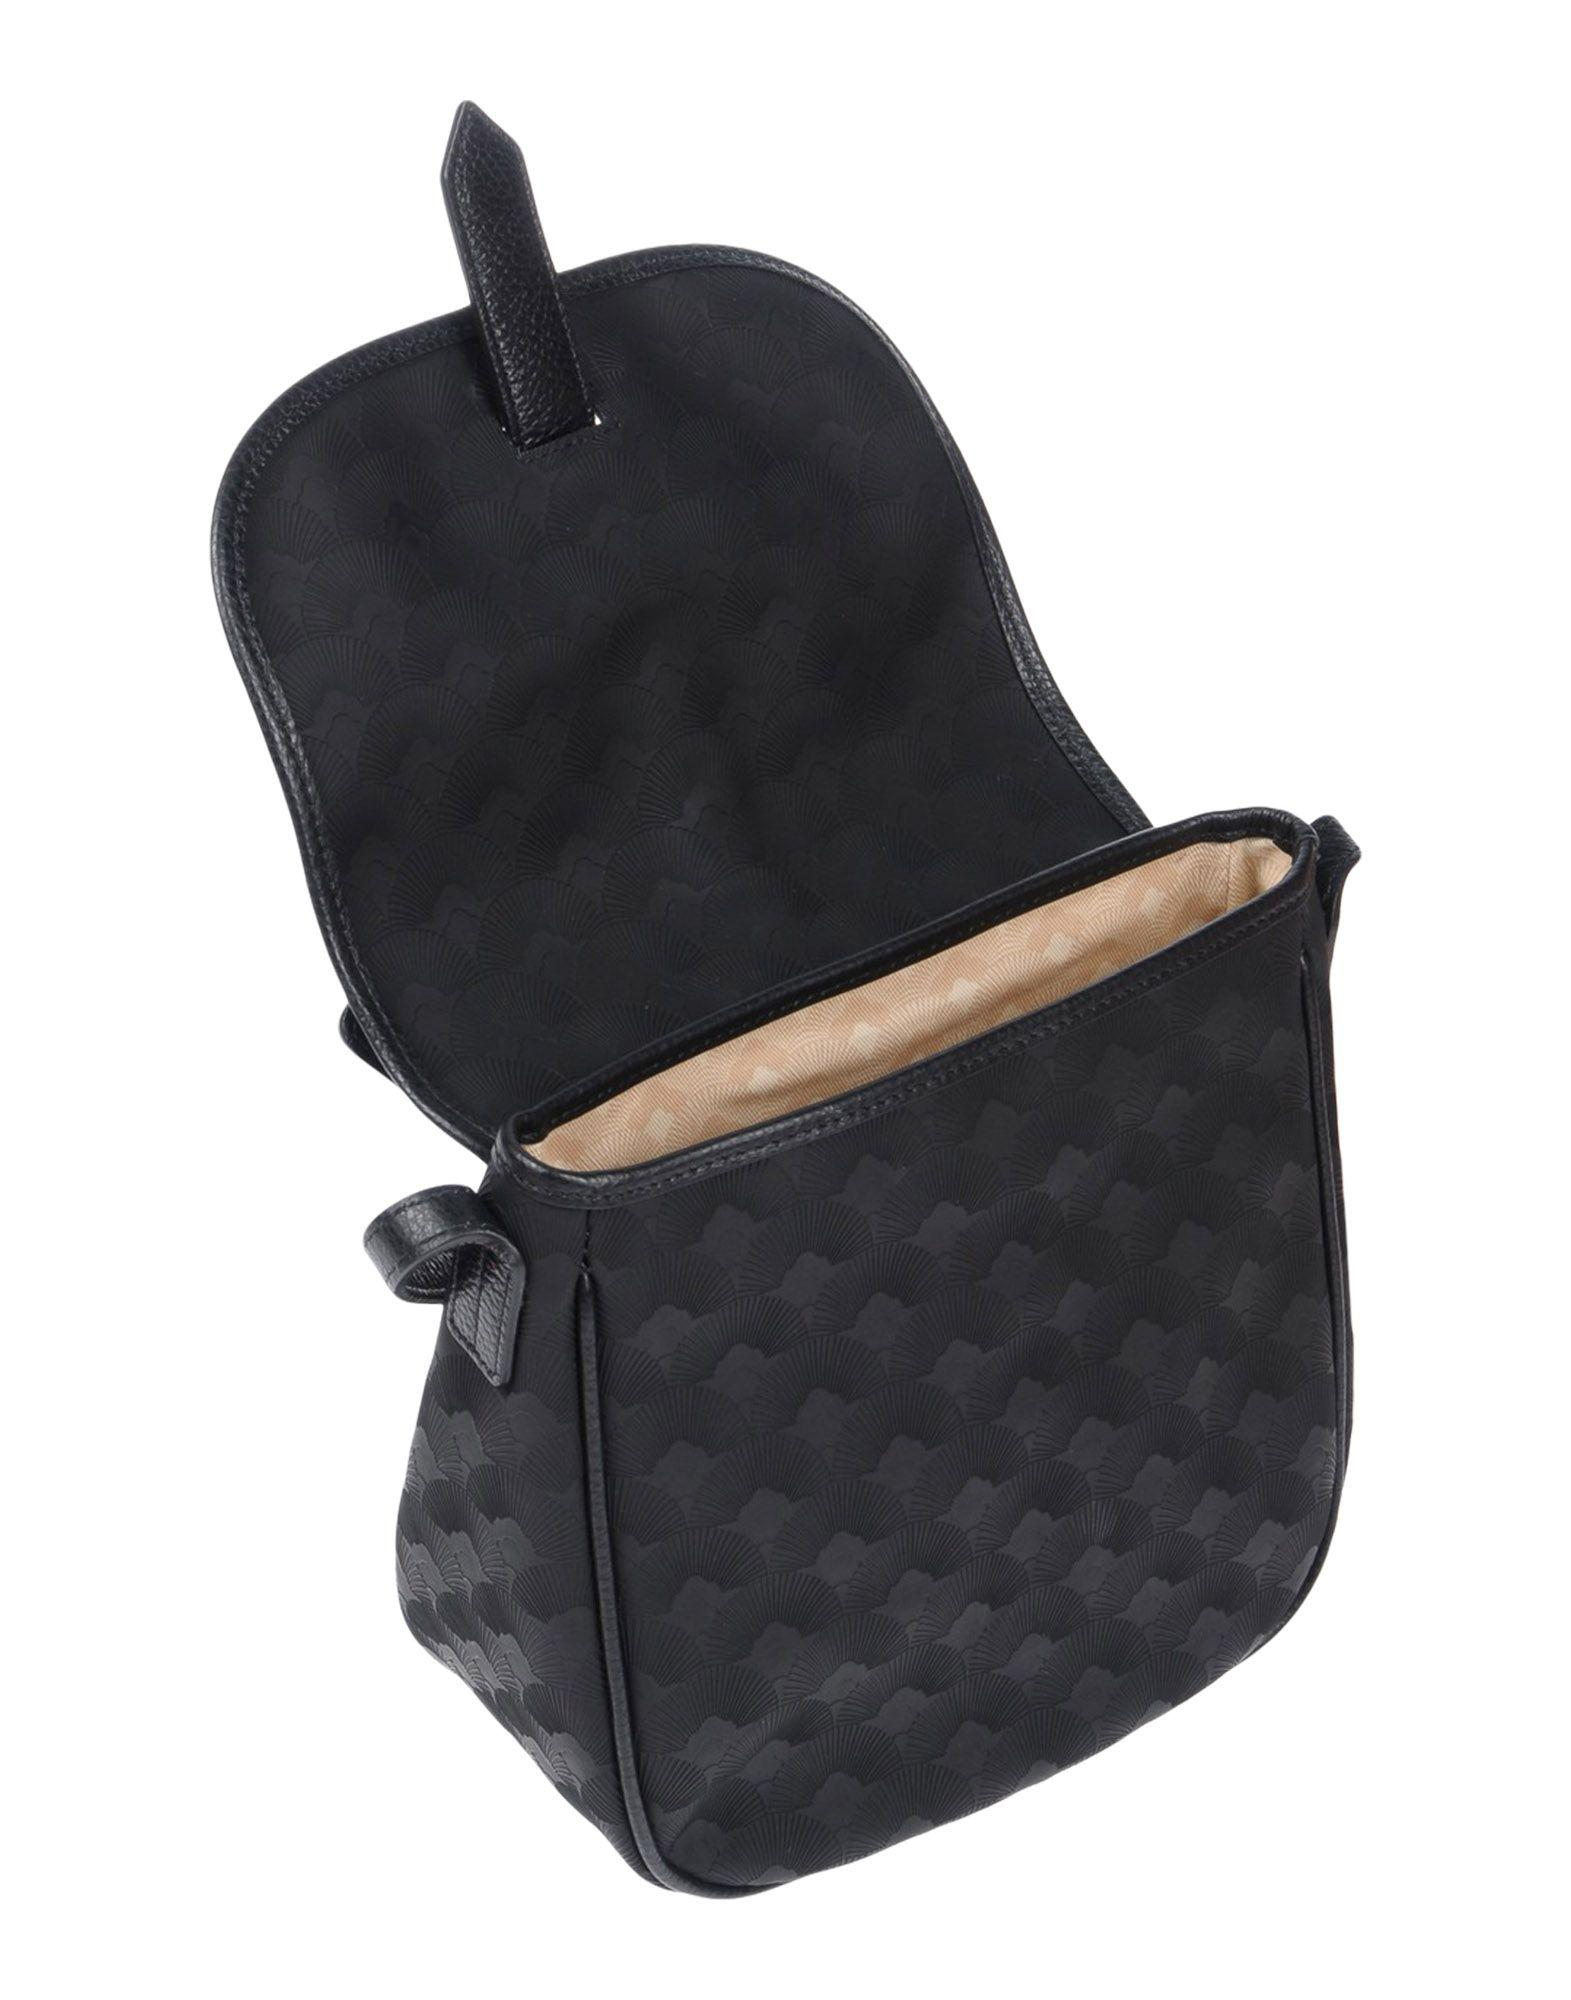 289 by SARA GIUNTI Leather Cross-body Bags in Black